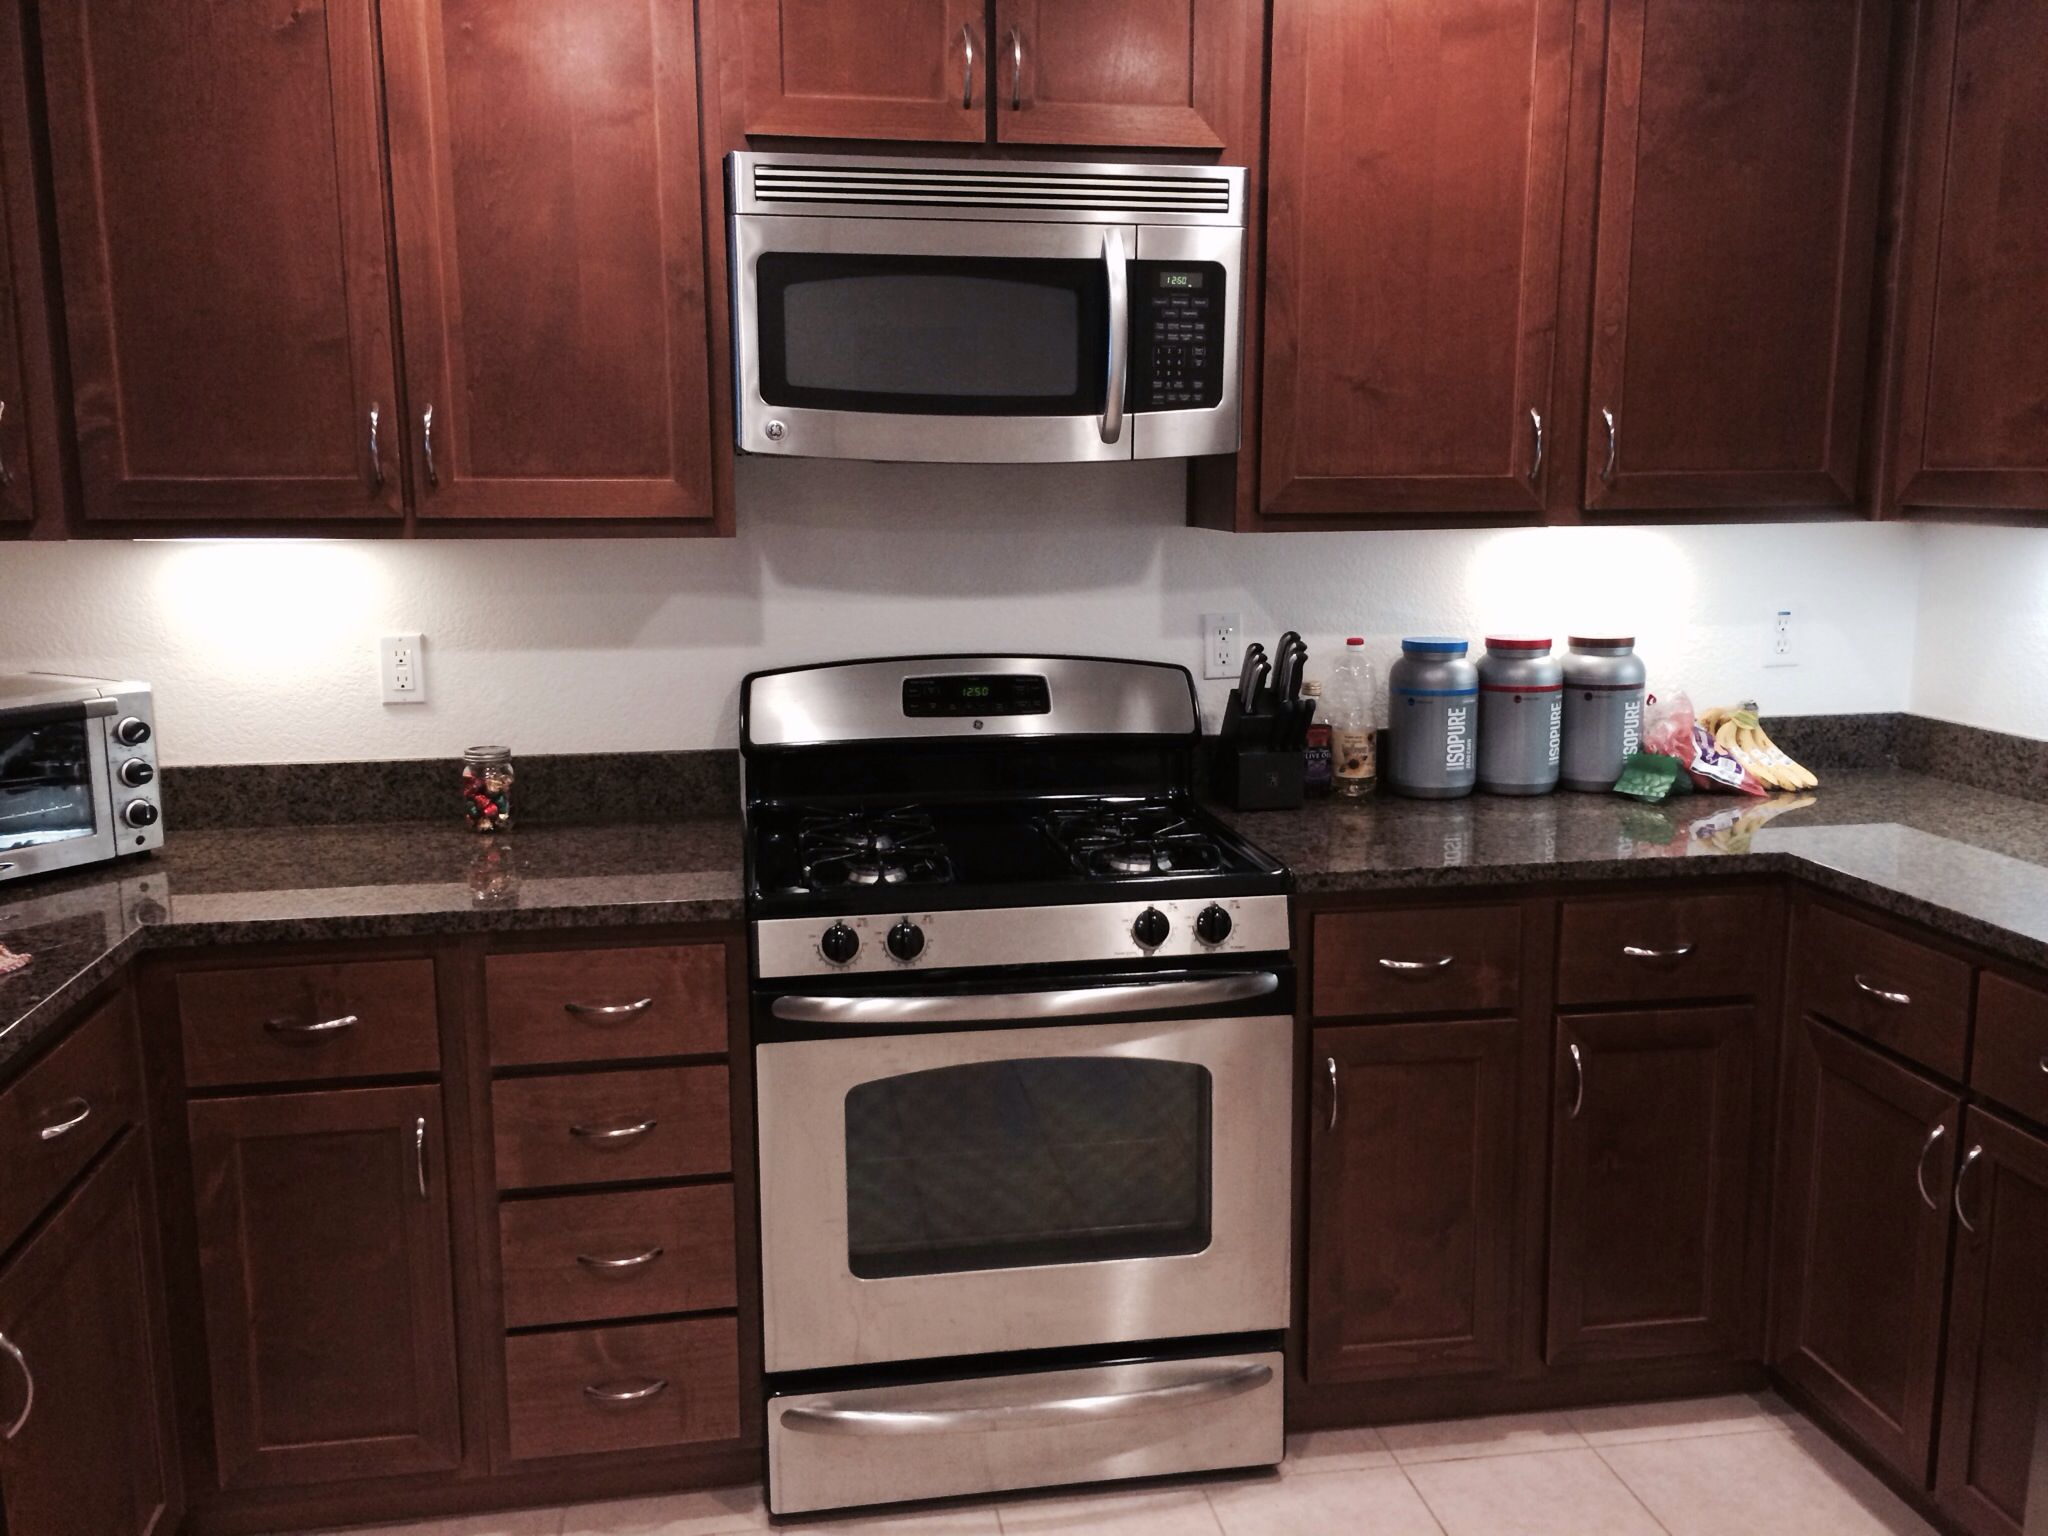 mahogany kitchen cabinets two seat table in the with black and tan